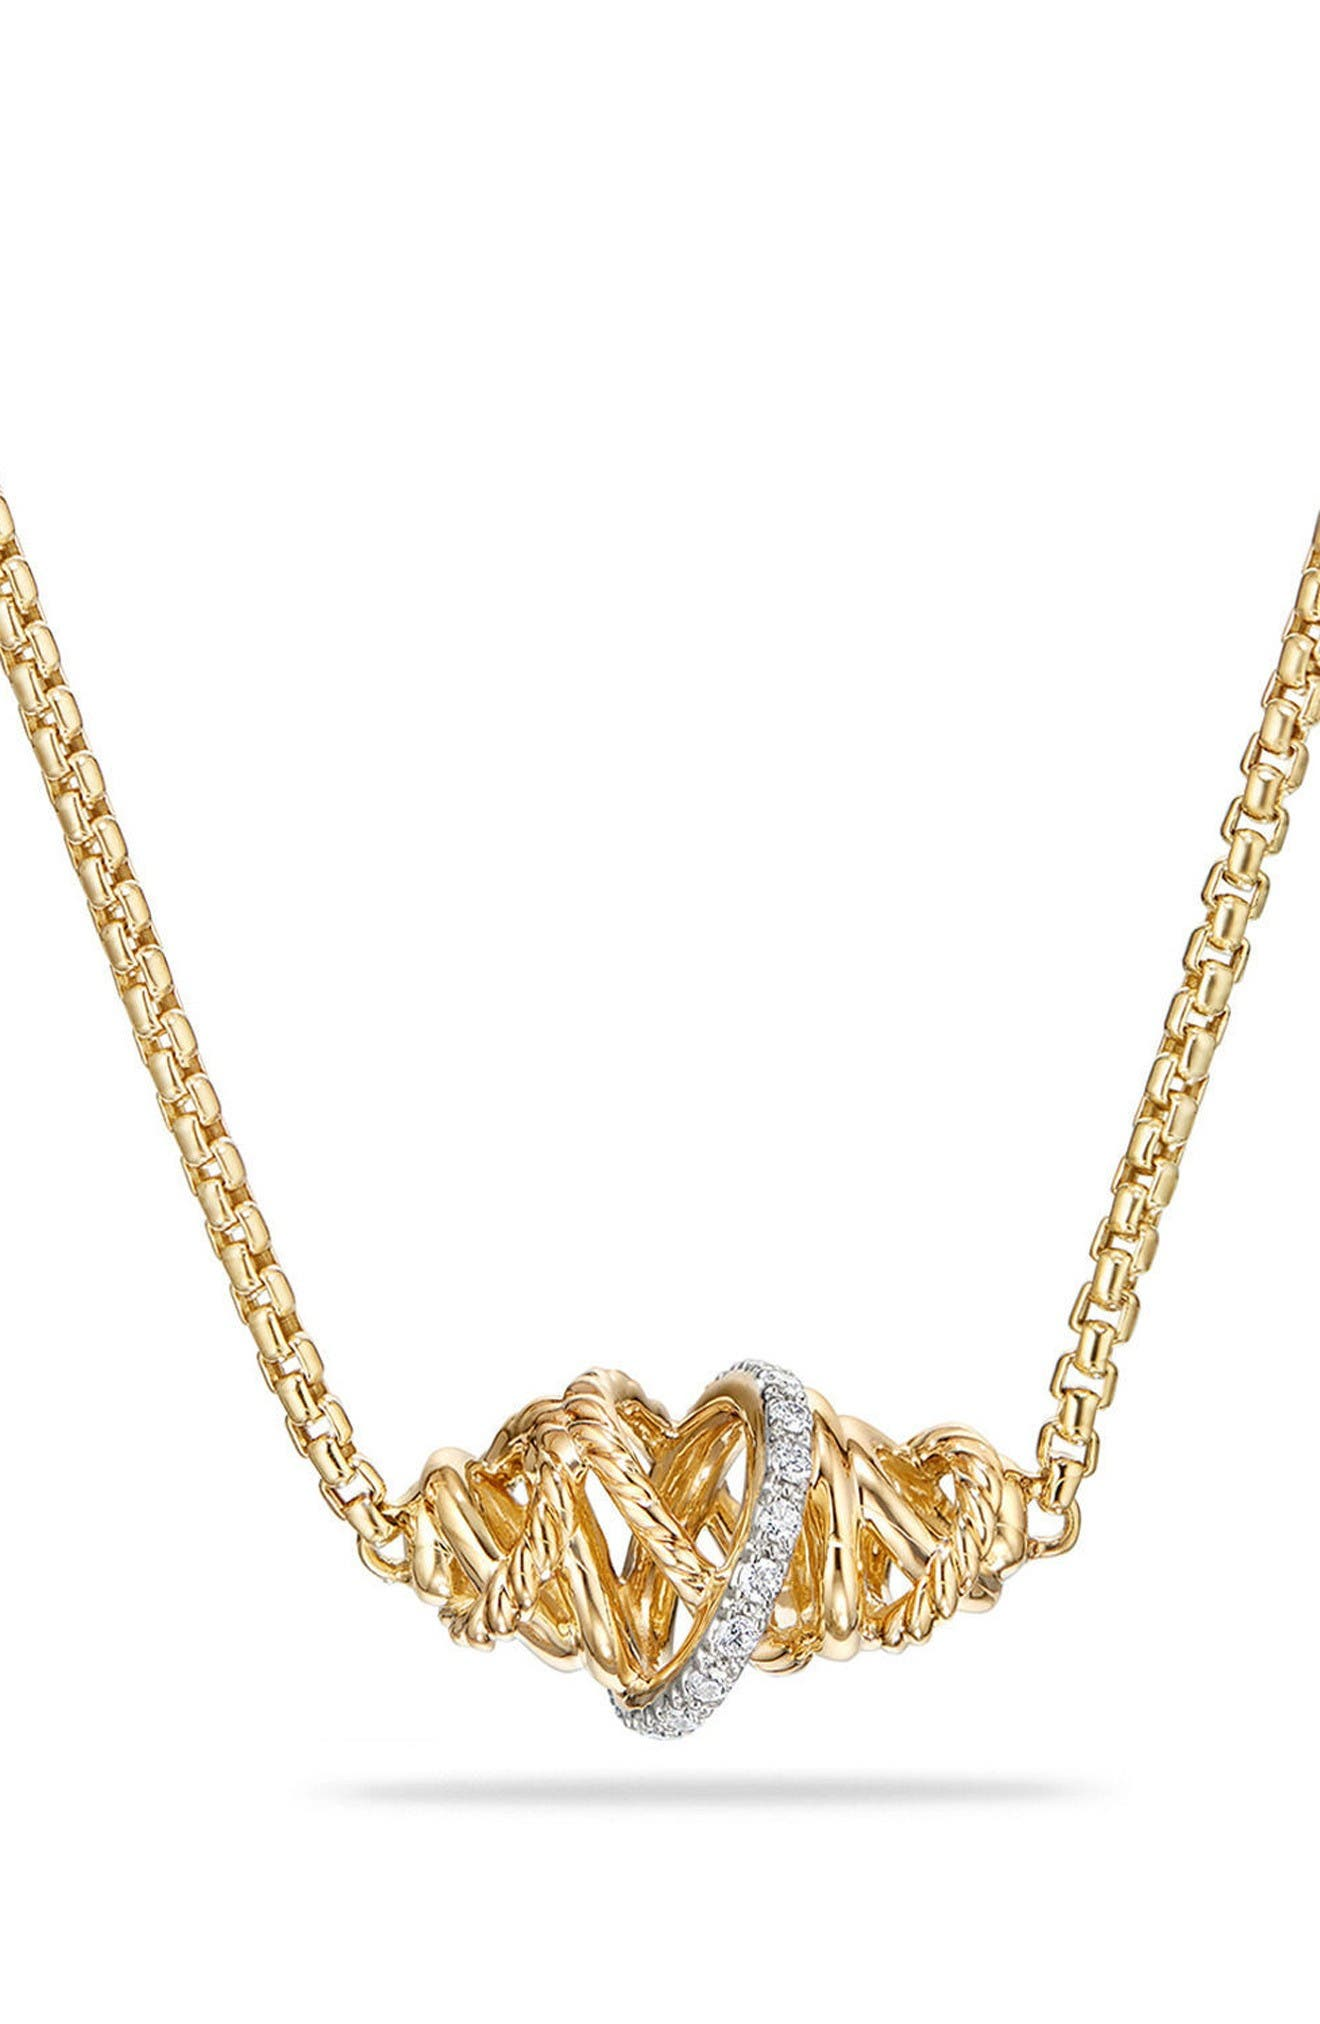 Crossover Station Necklace in 18K Gold with Diamonds,                         Main,                         color, Yellow Gold/ Diamond